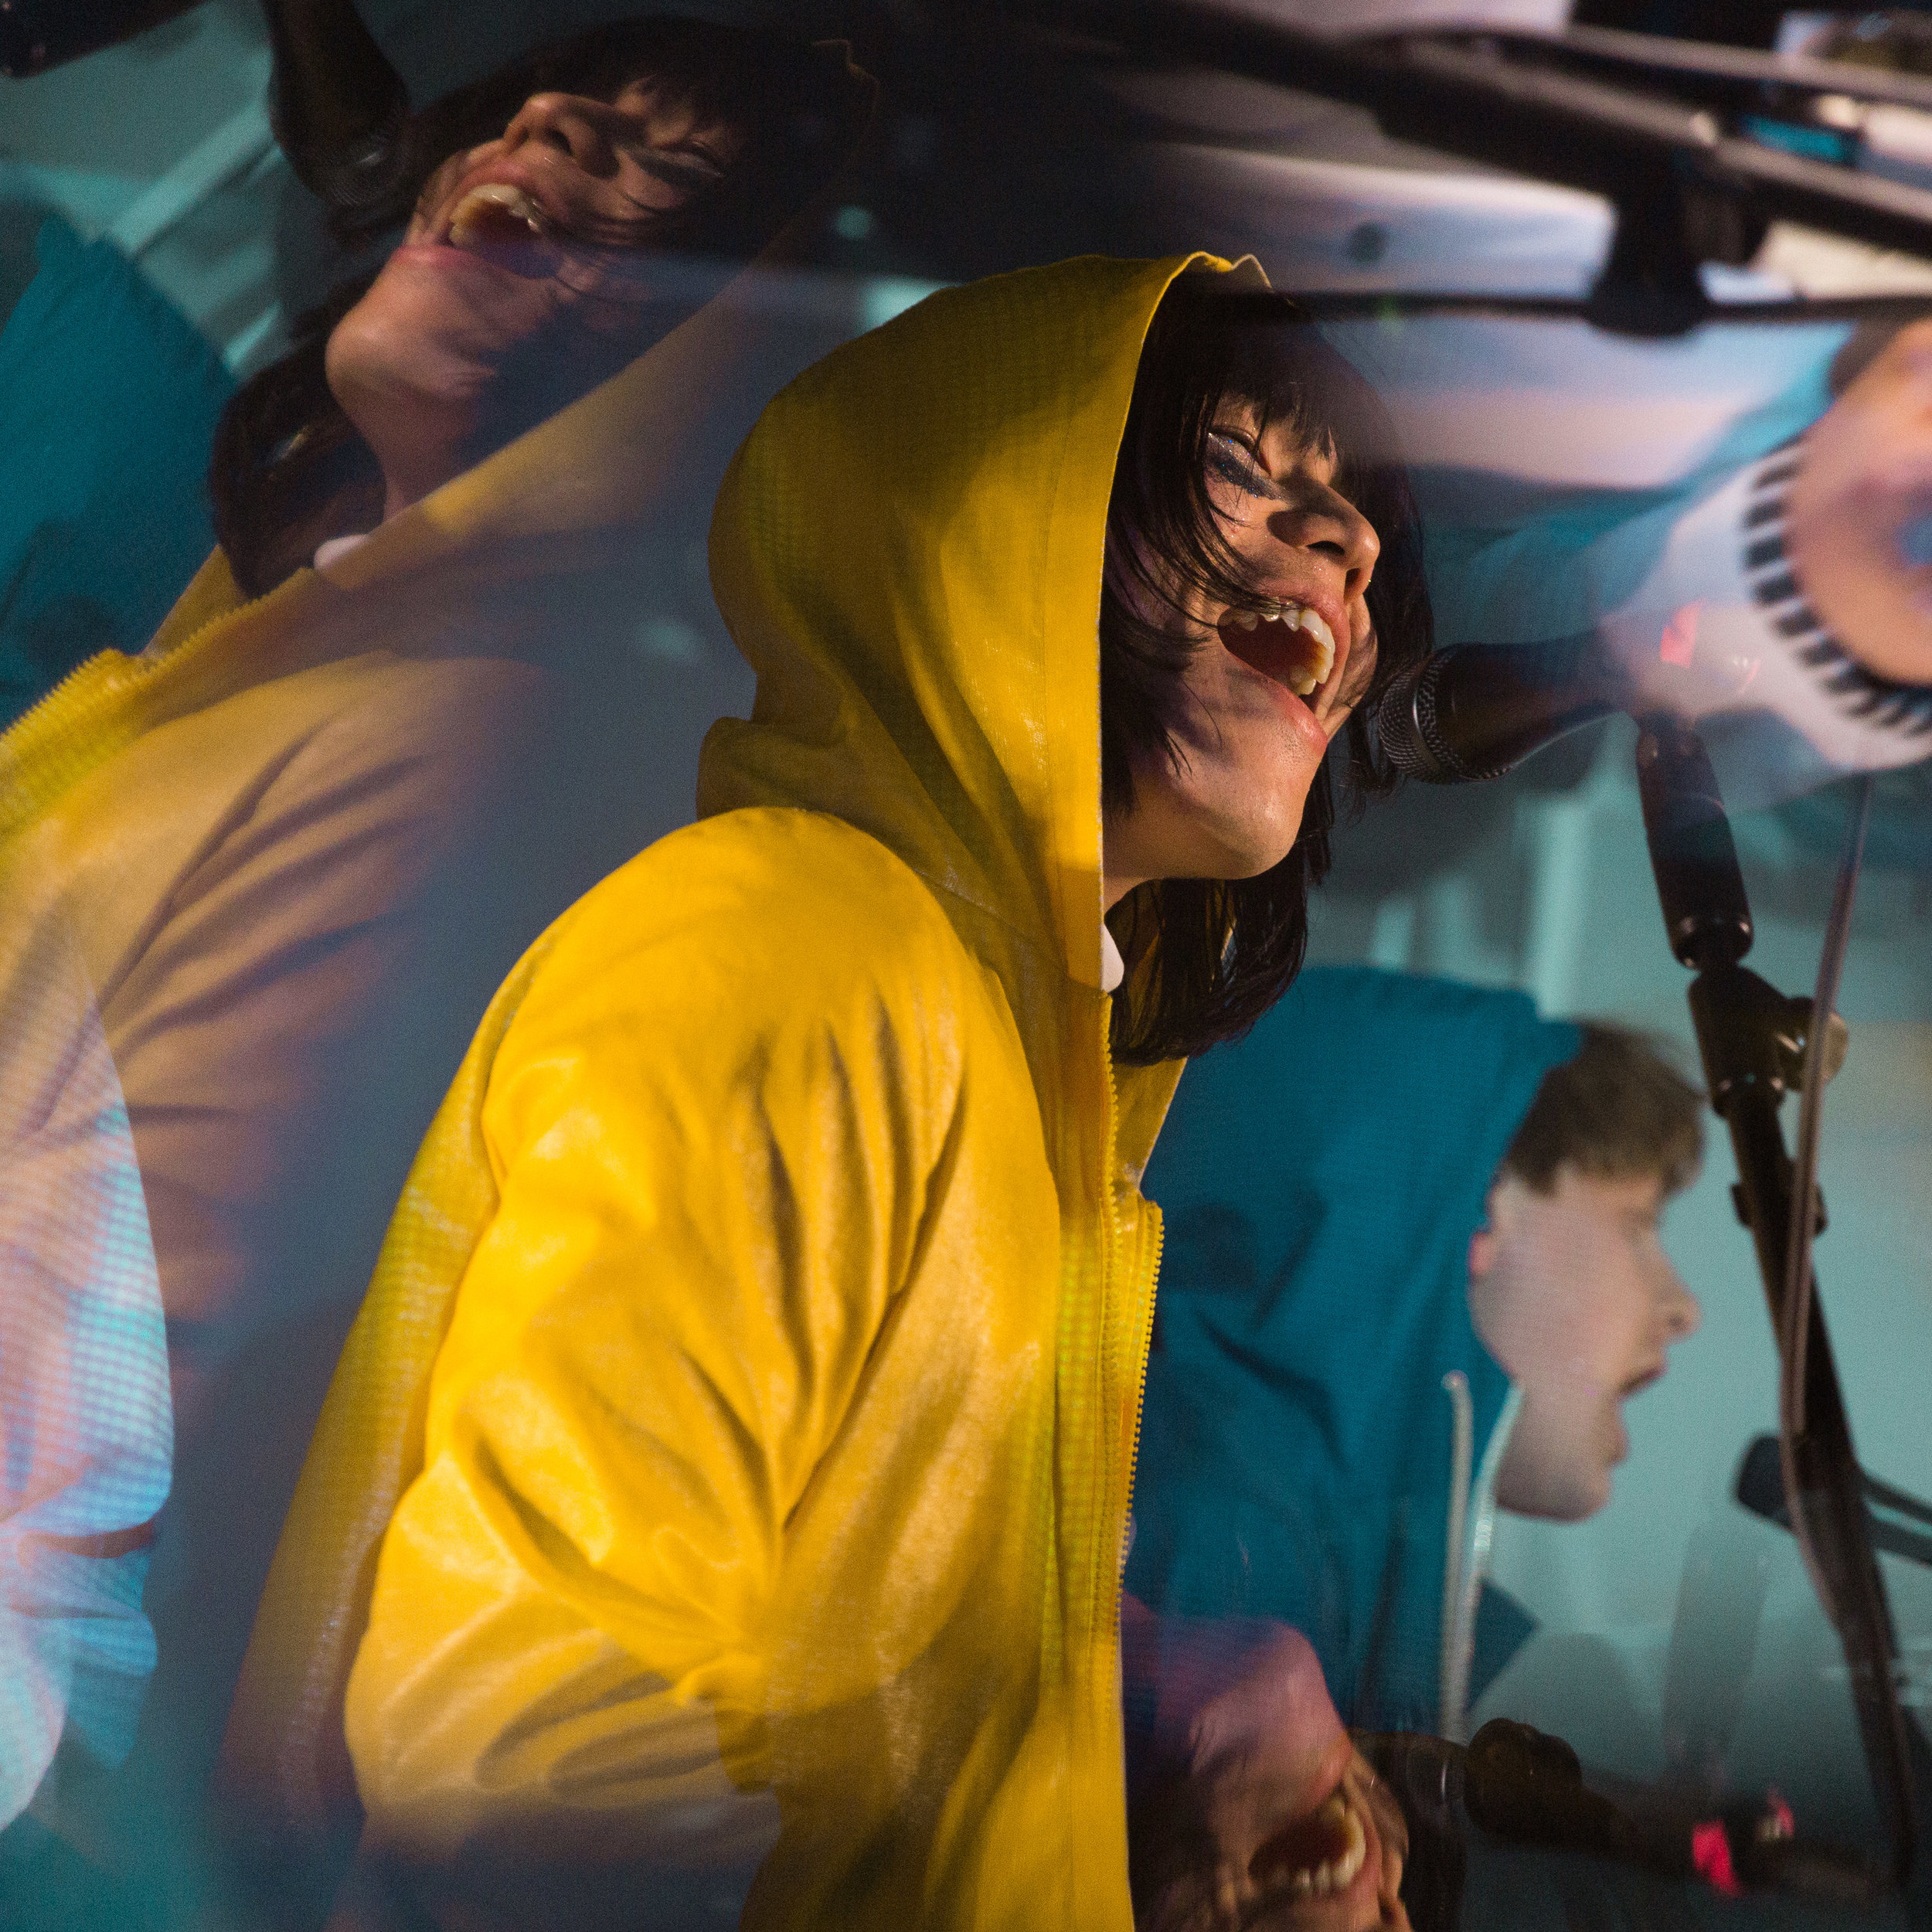 kirby-gladstein-photography-superorganism-concert-moroccan-lounge-los-angeles-3